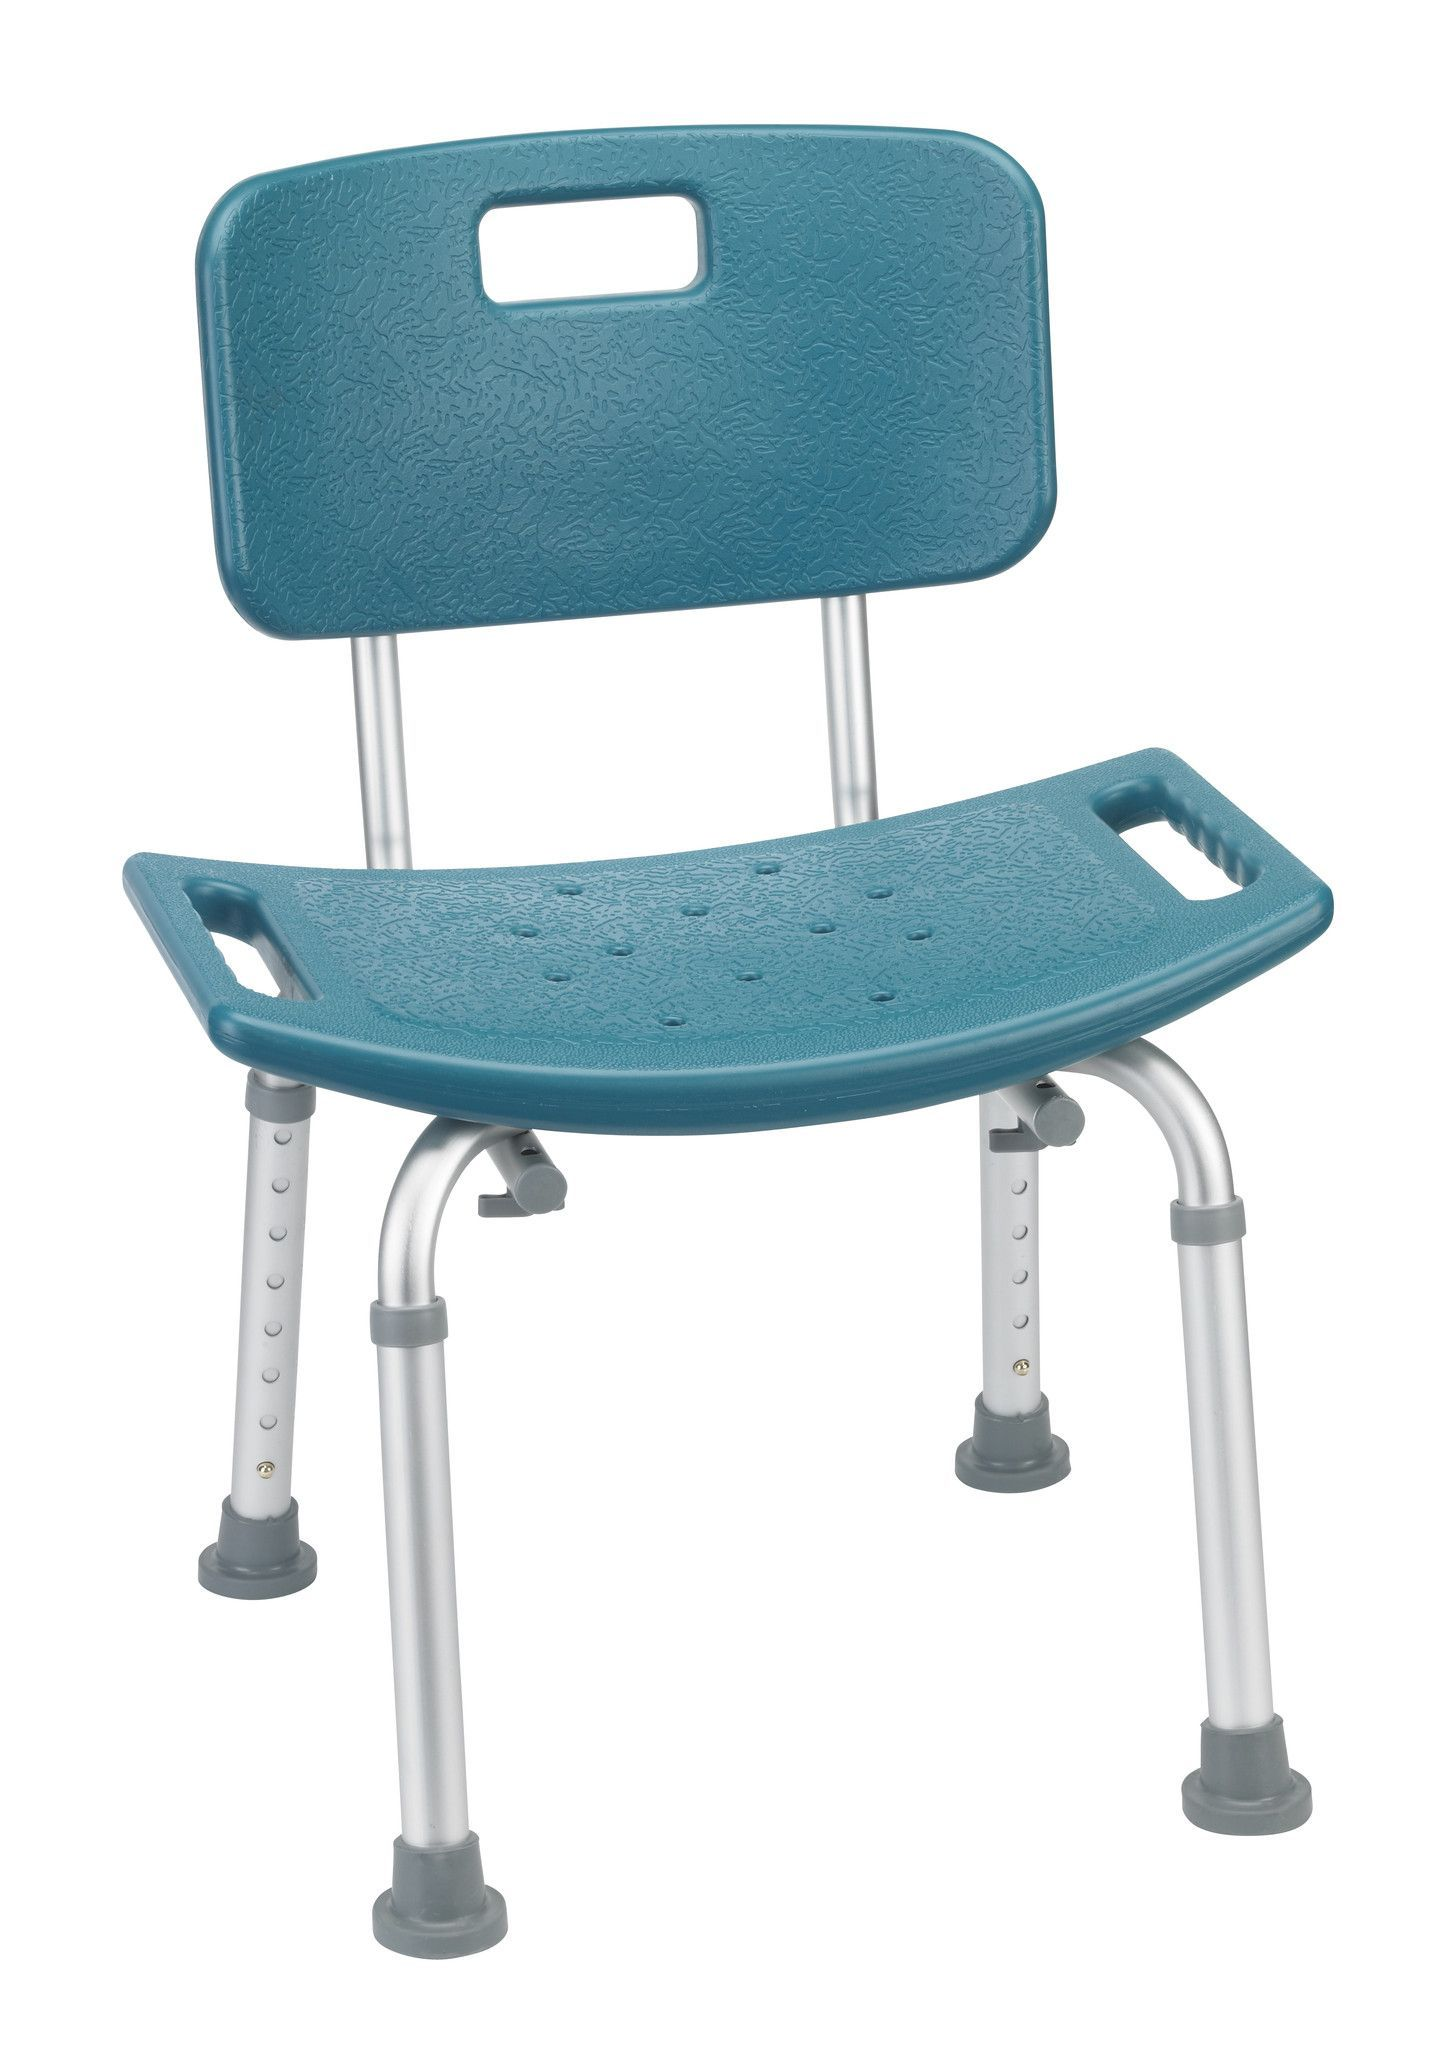 Drive Medical Shower Tub Bench Chair with Back | Products ...